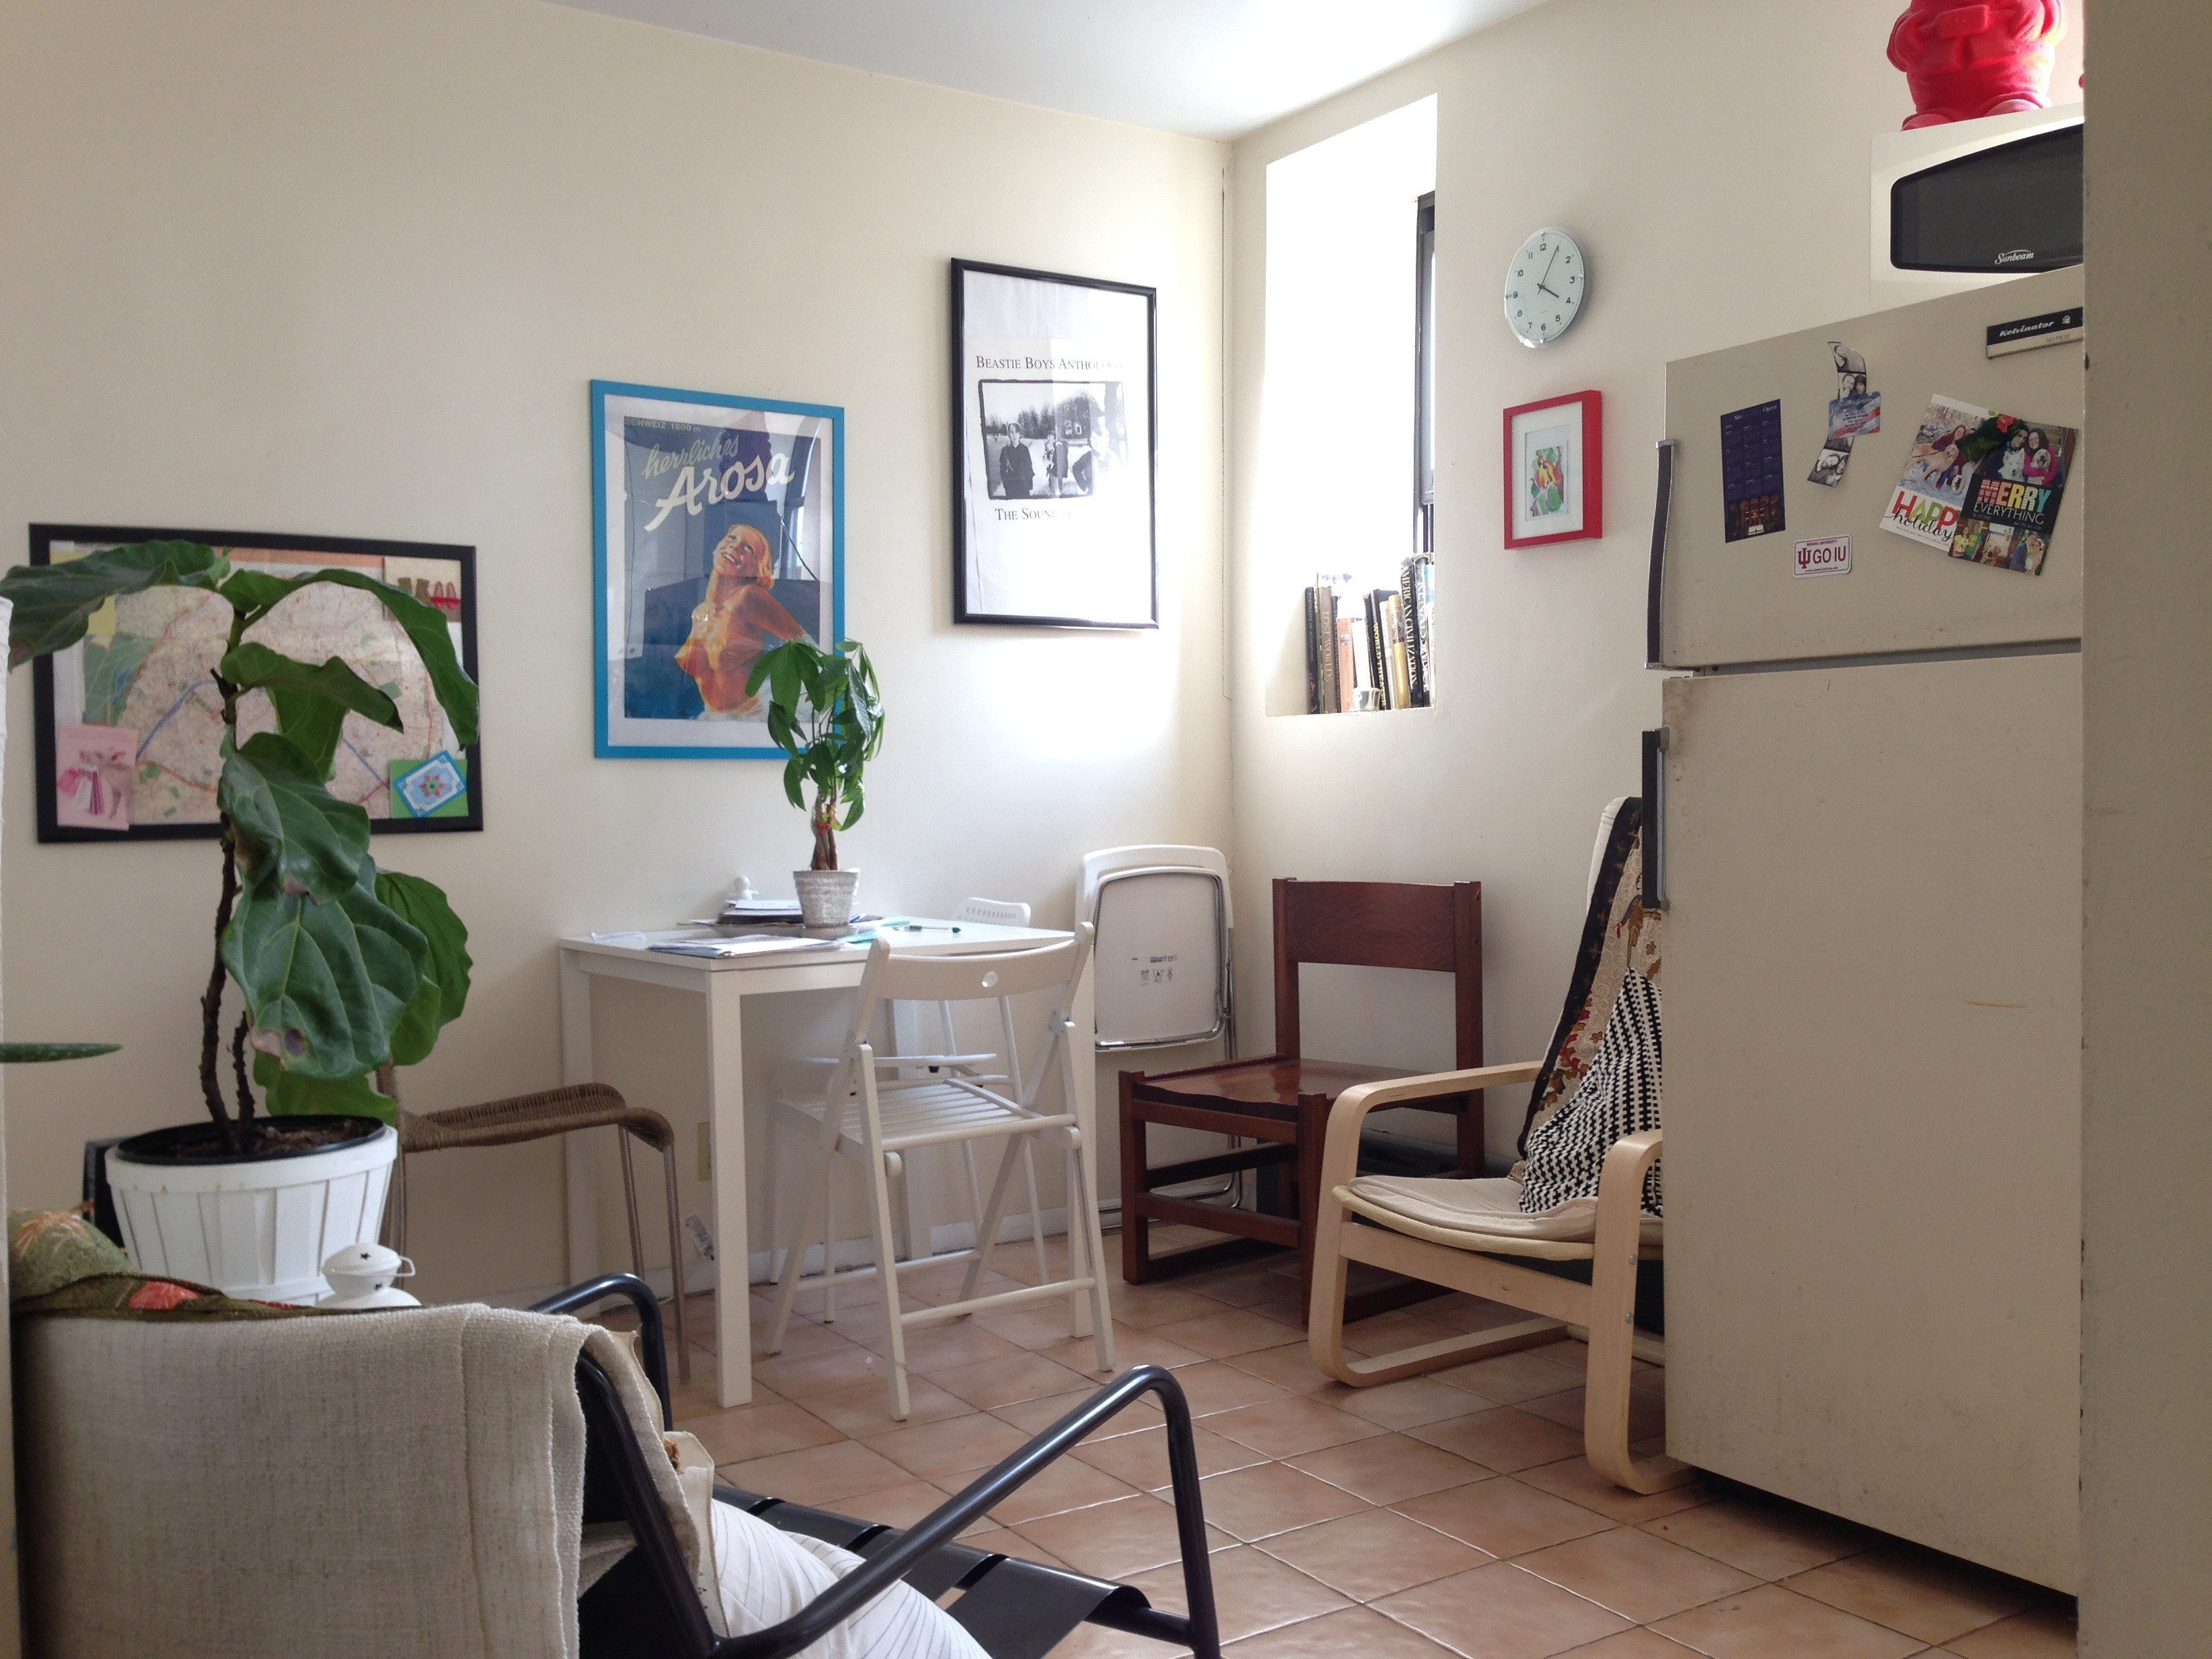 301 E 110th St 30 New York Ny 10029 2 Bedroom Apartment For Rent For 1 850 Month Zumper